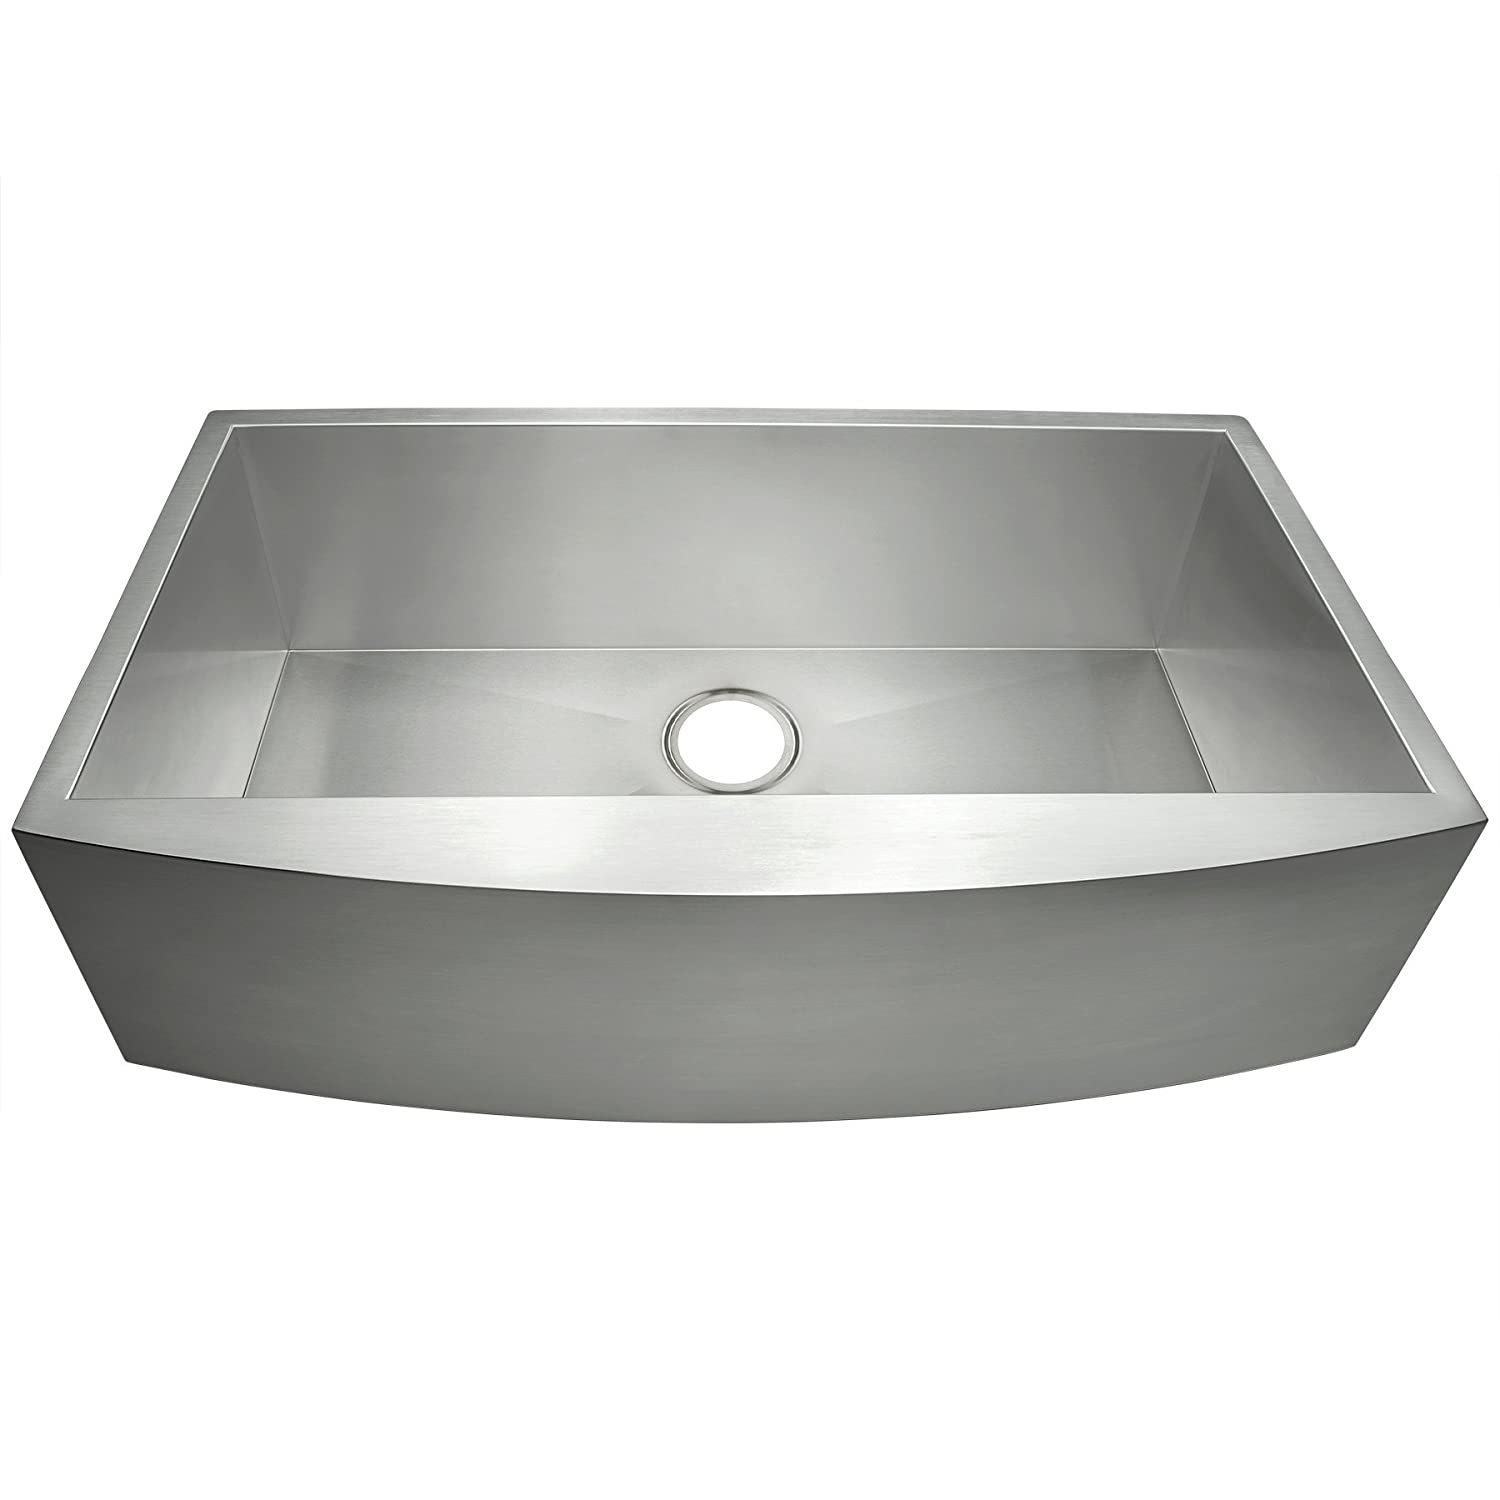 Blanco 519545 Quatrus R15 Under Mount Bar Sink, Small, Stainless Steel